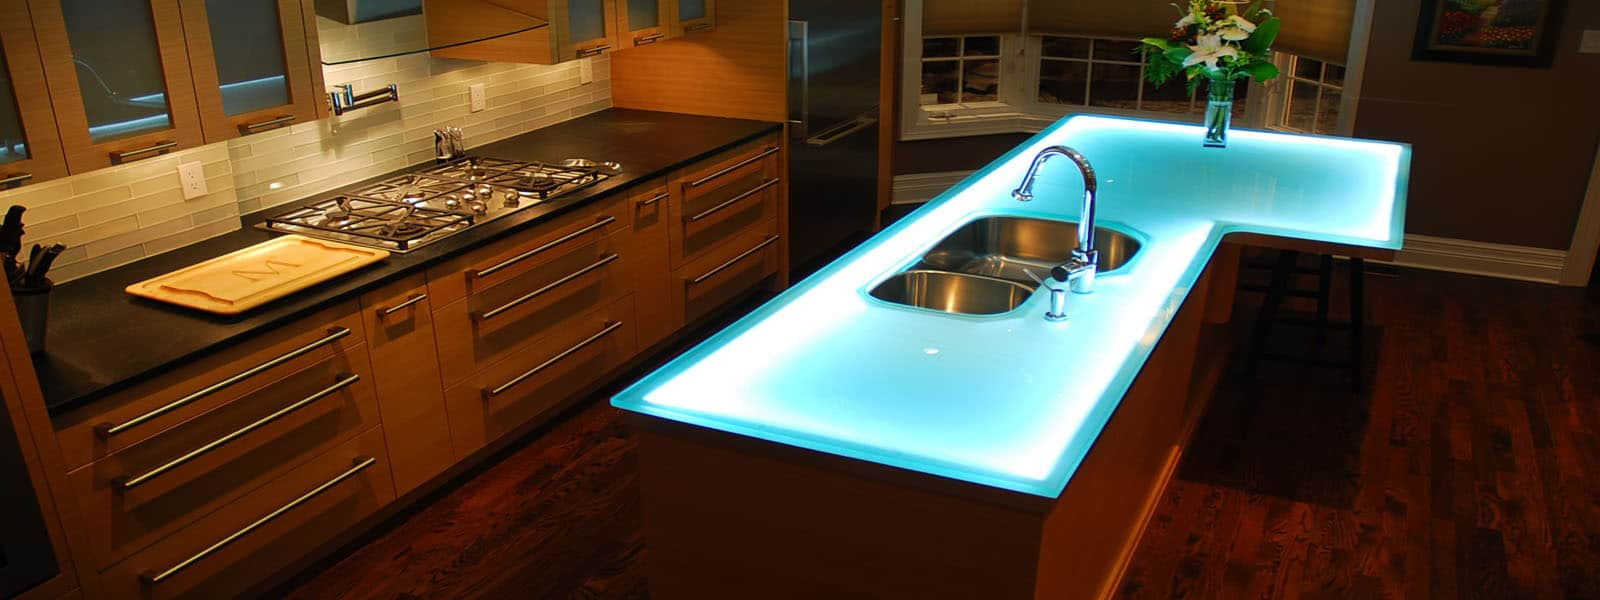 modern kitchen countertops from unusual materials modern kitchen countertops View in gallery modern countertops unusual material kitchen glass Modern Kitchen Countertops from Unusual Materials 30 Ideas